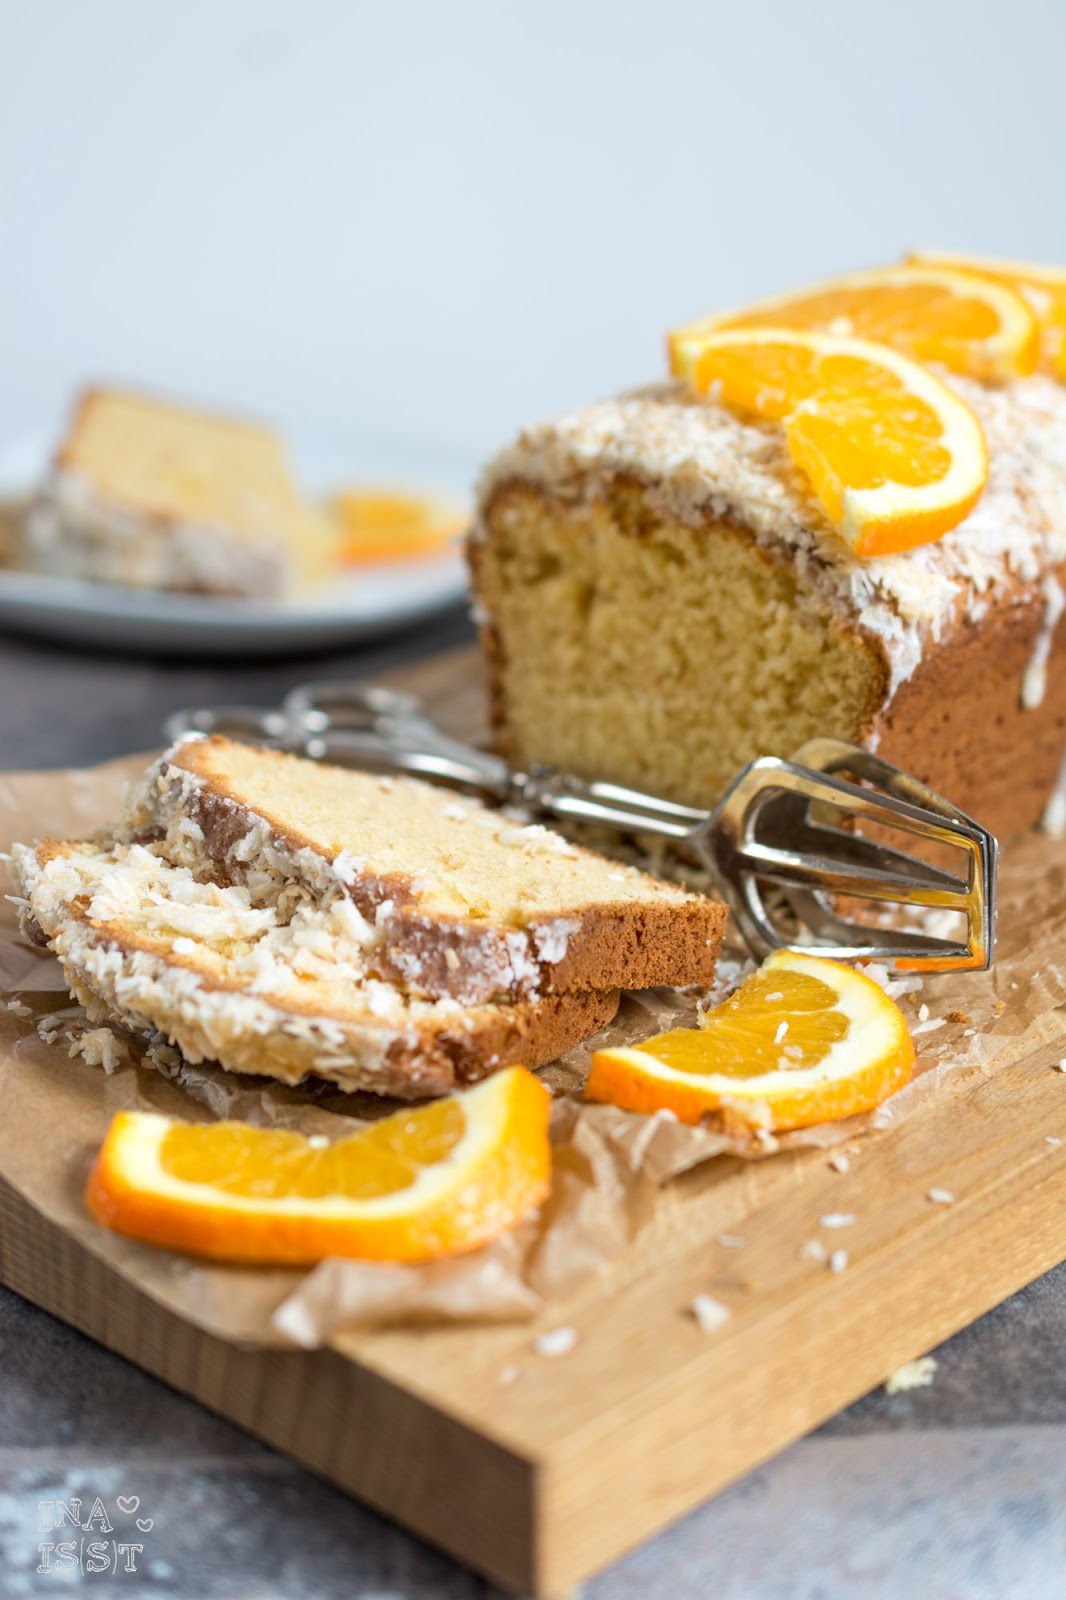 ina is s t einfacher orangen kokos kuchen quick and easy orange cake with coconut. Black Bedroom Furniture Sets. Home Design Ideas